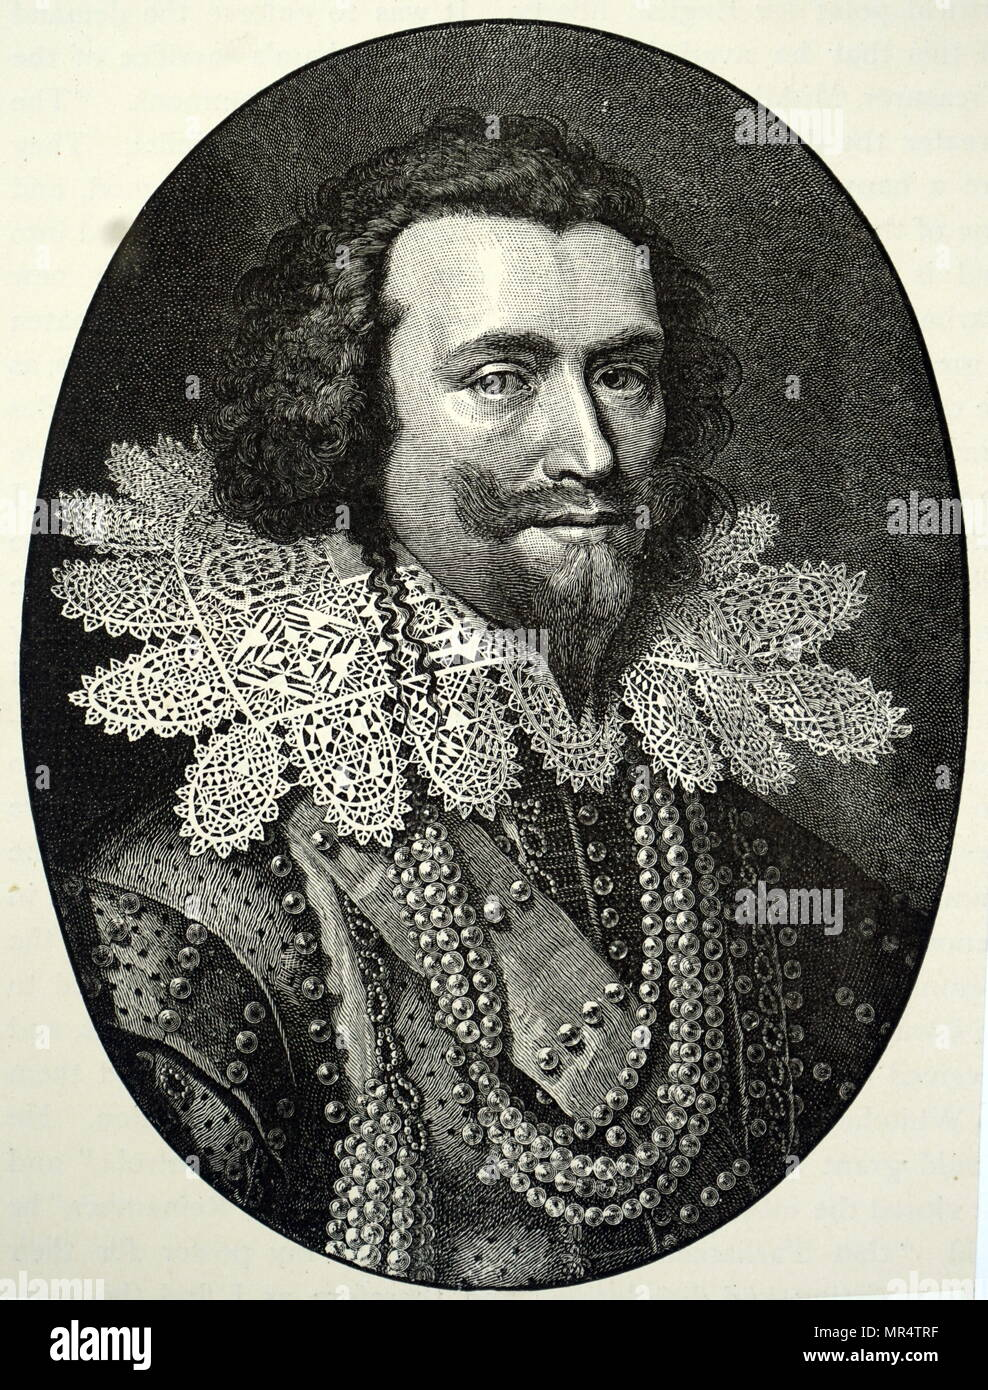 Engraved portrait of George Villiers, 1st Duke of Buckingham (1592-1628) an English courtier, statesman, and patron of the arts. Dated 17th century - Stock Image